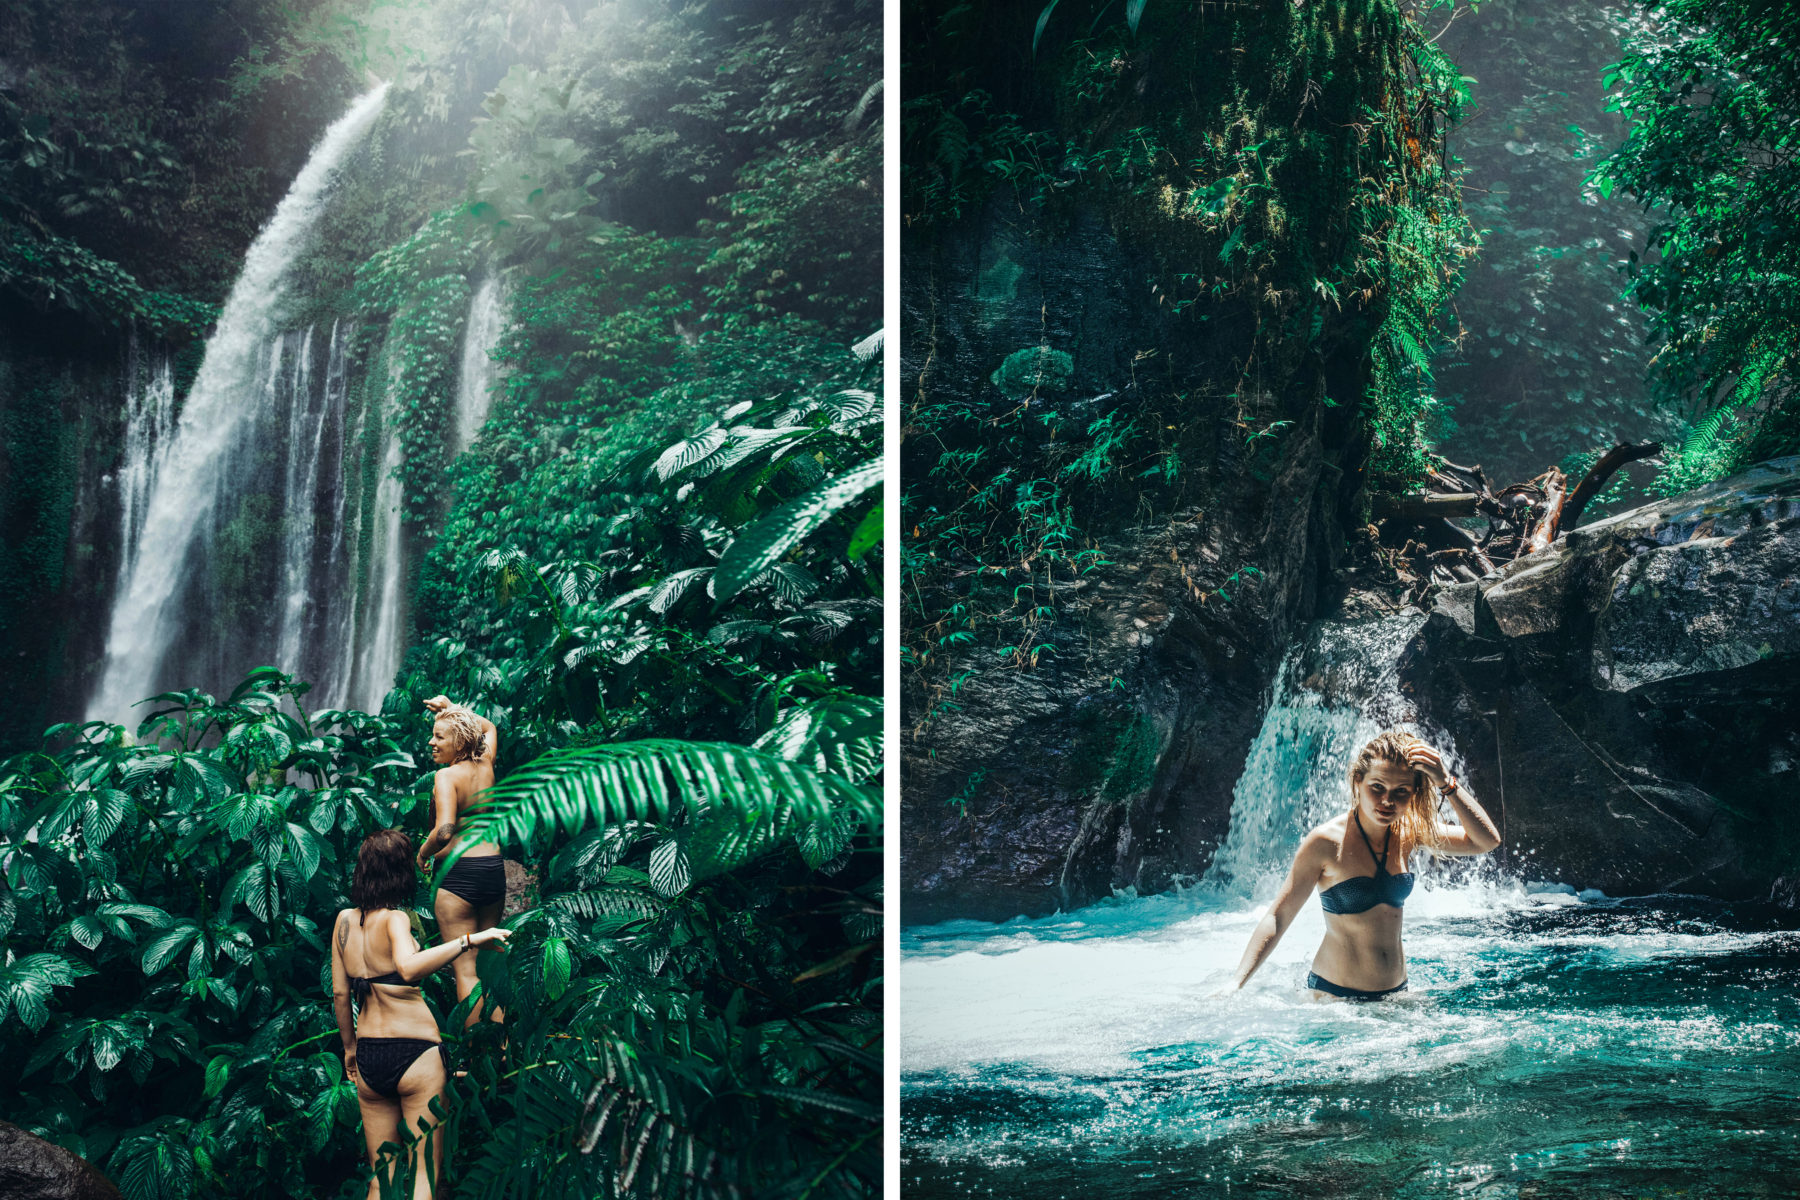 lombok indonesia waterfall green lush jungle exploring traveling swim jungle tiu kelep